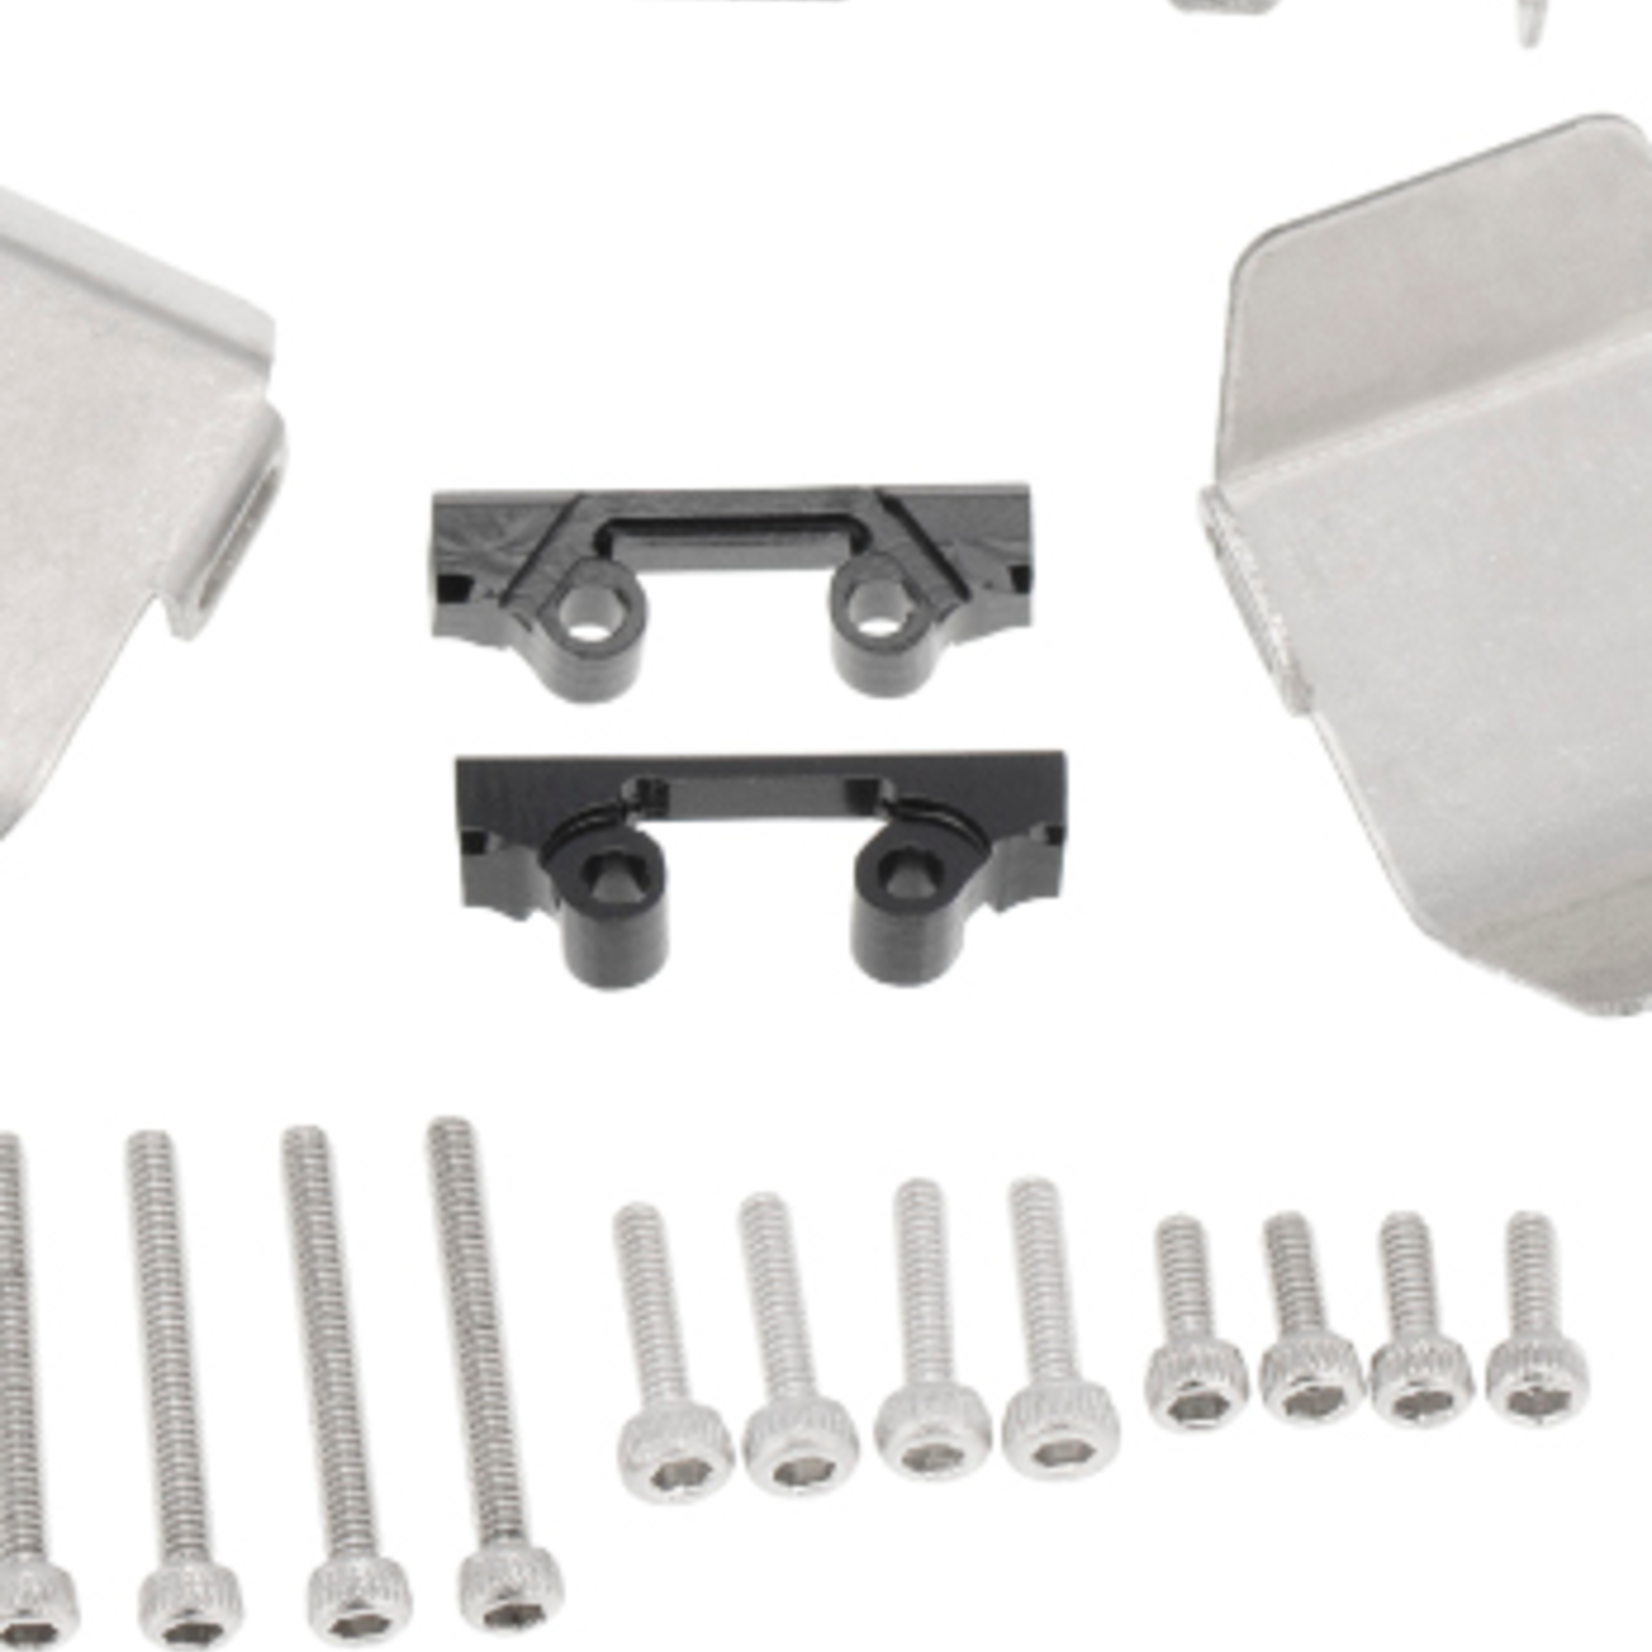 Hobby Details DTSCX24-21 Hobby Details Axial SCX24 Stainless Steel Chassis Armor Skid Plate Guard Parts 3pcs/set